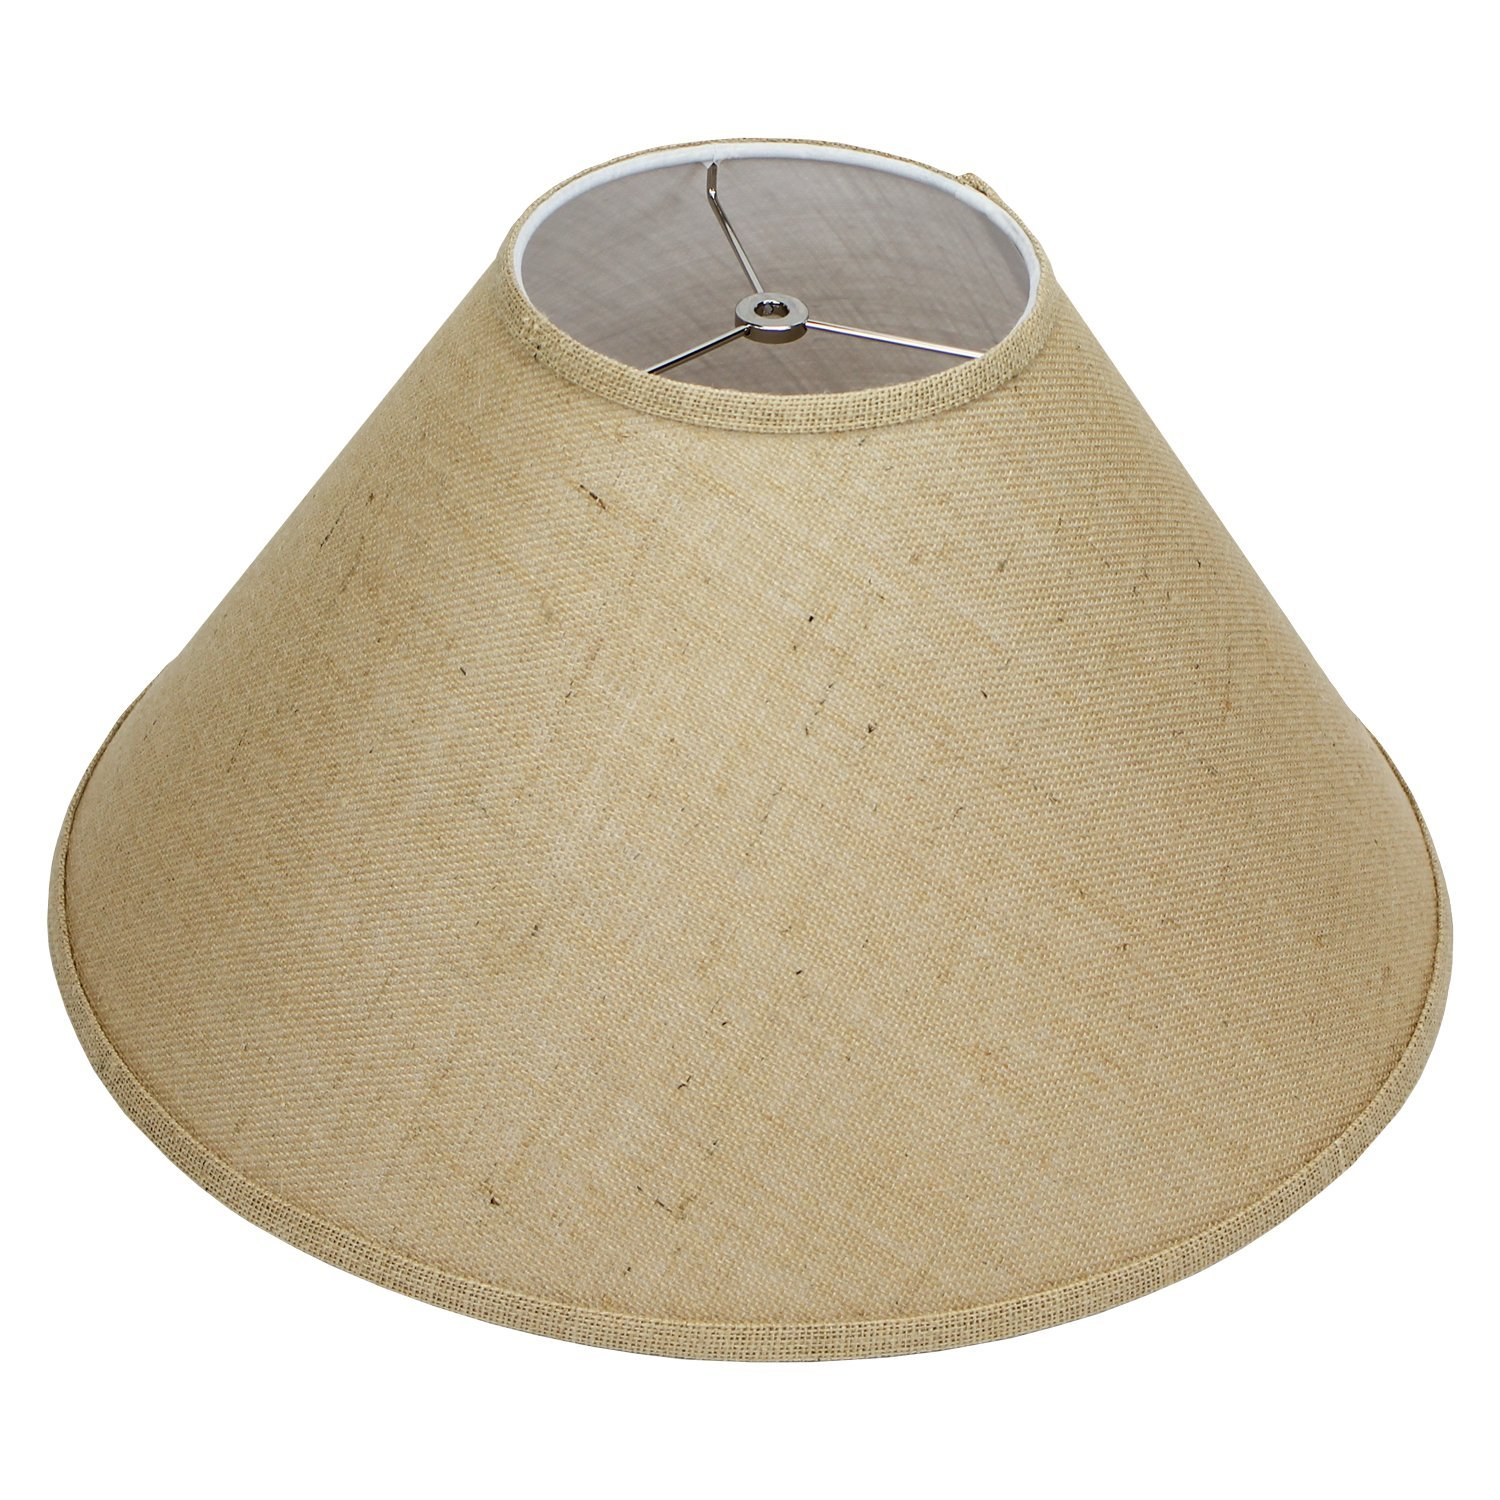 Fenchelshades com 7 top diameter x 20 bottom diameter 12 slant height lampshade usa made burlap natural amazon com